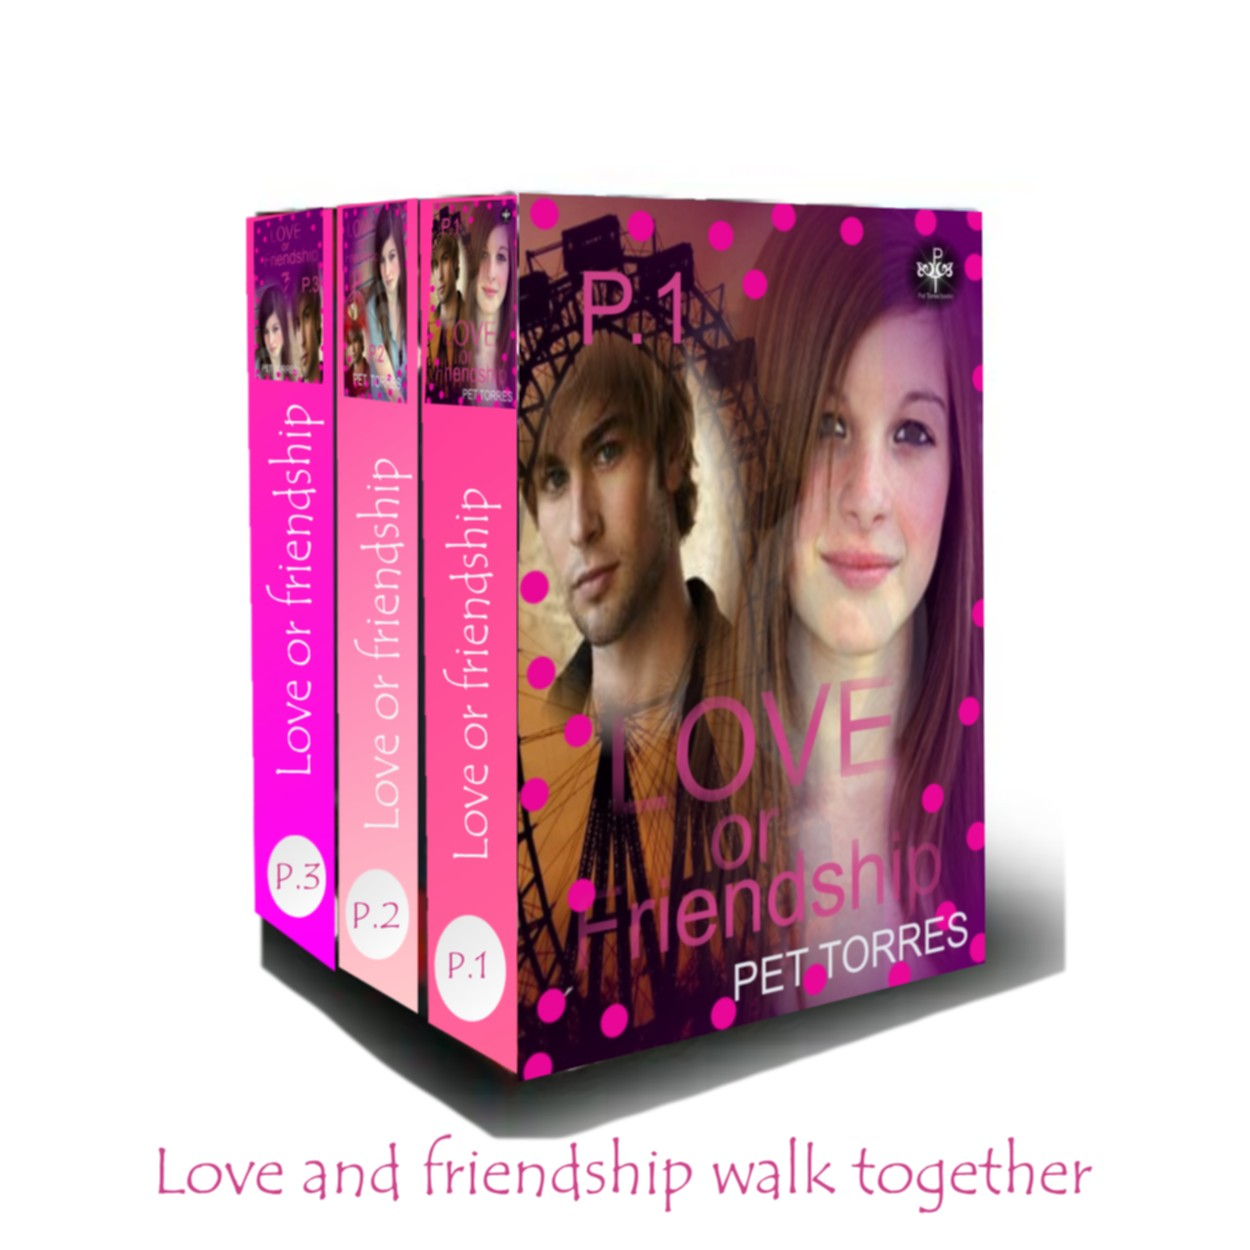 Box Set: Love or friendship